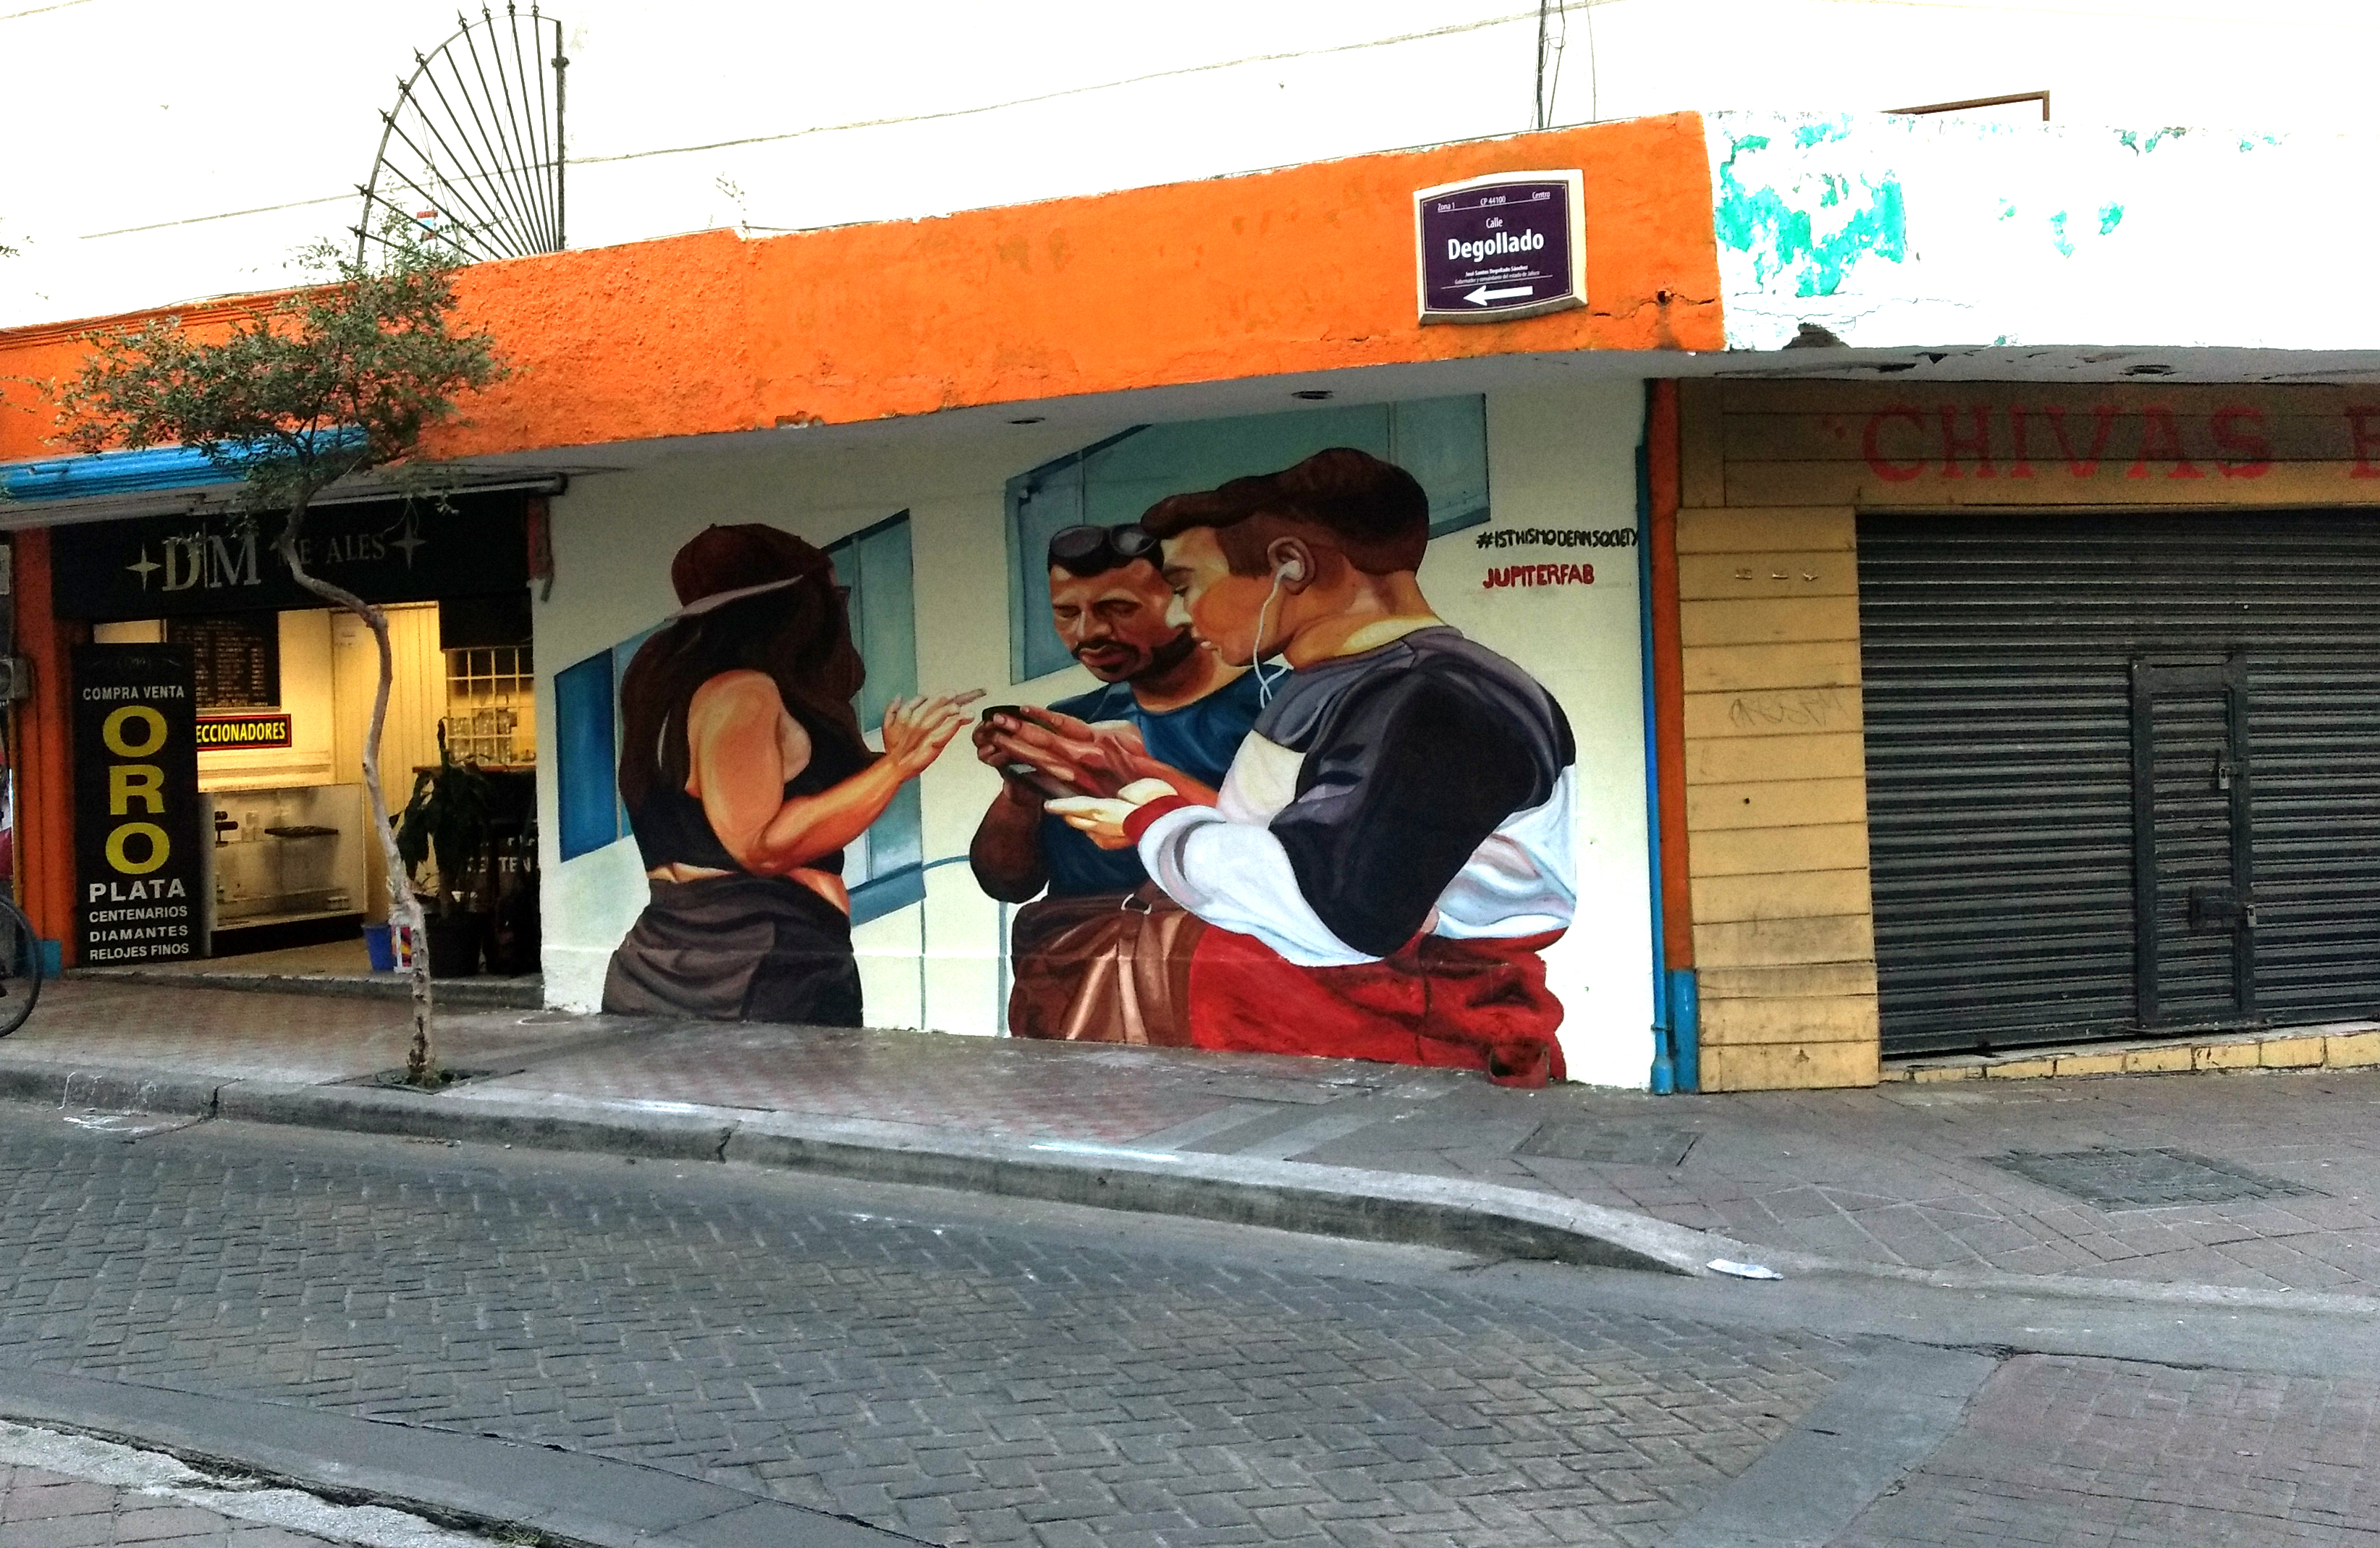 Mural about technology abuse in Guadalajara, Mexico